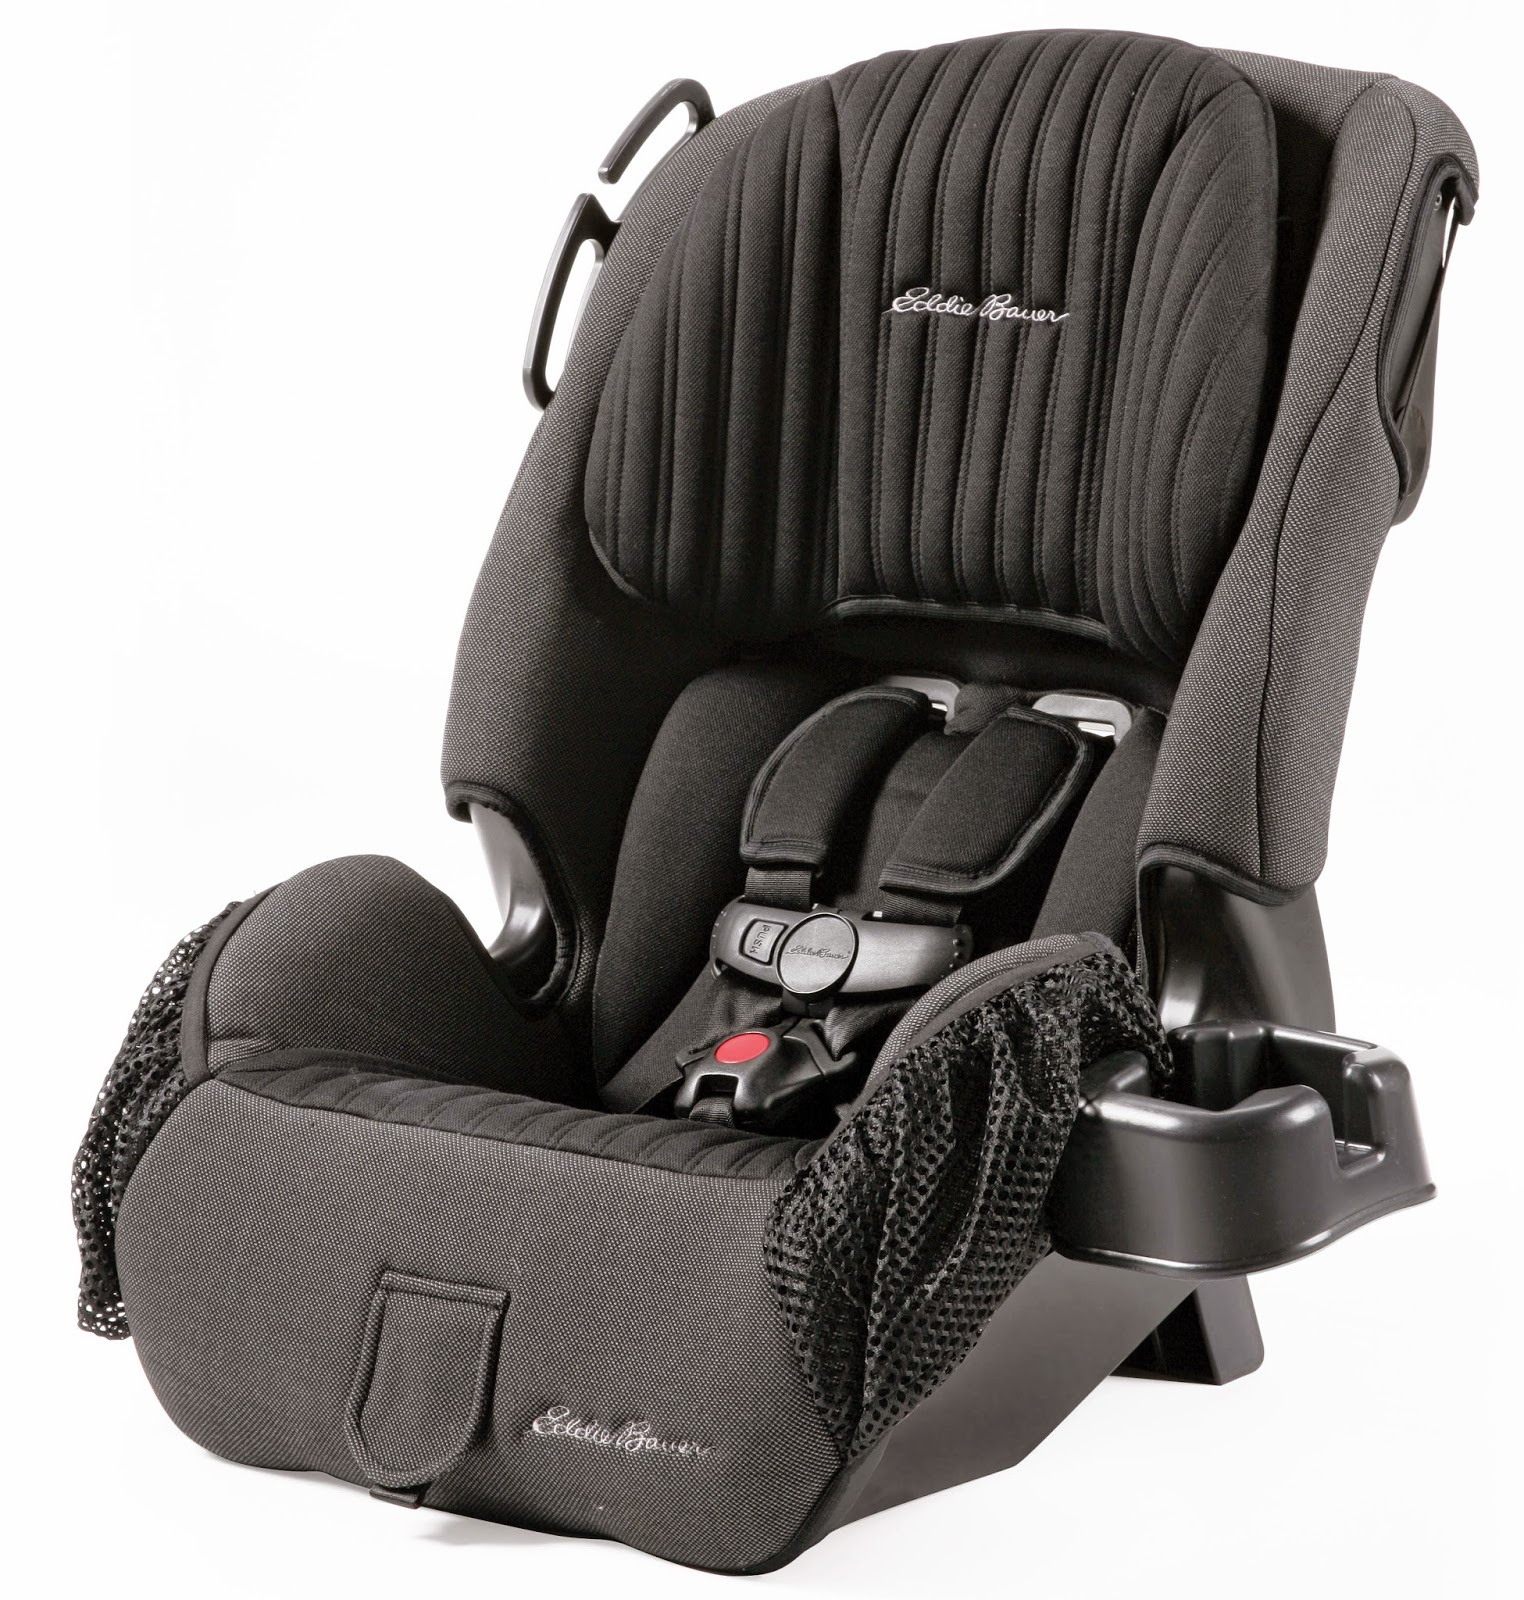 Convertible Eddie Bauer Car Seat Covers For More Mileage